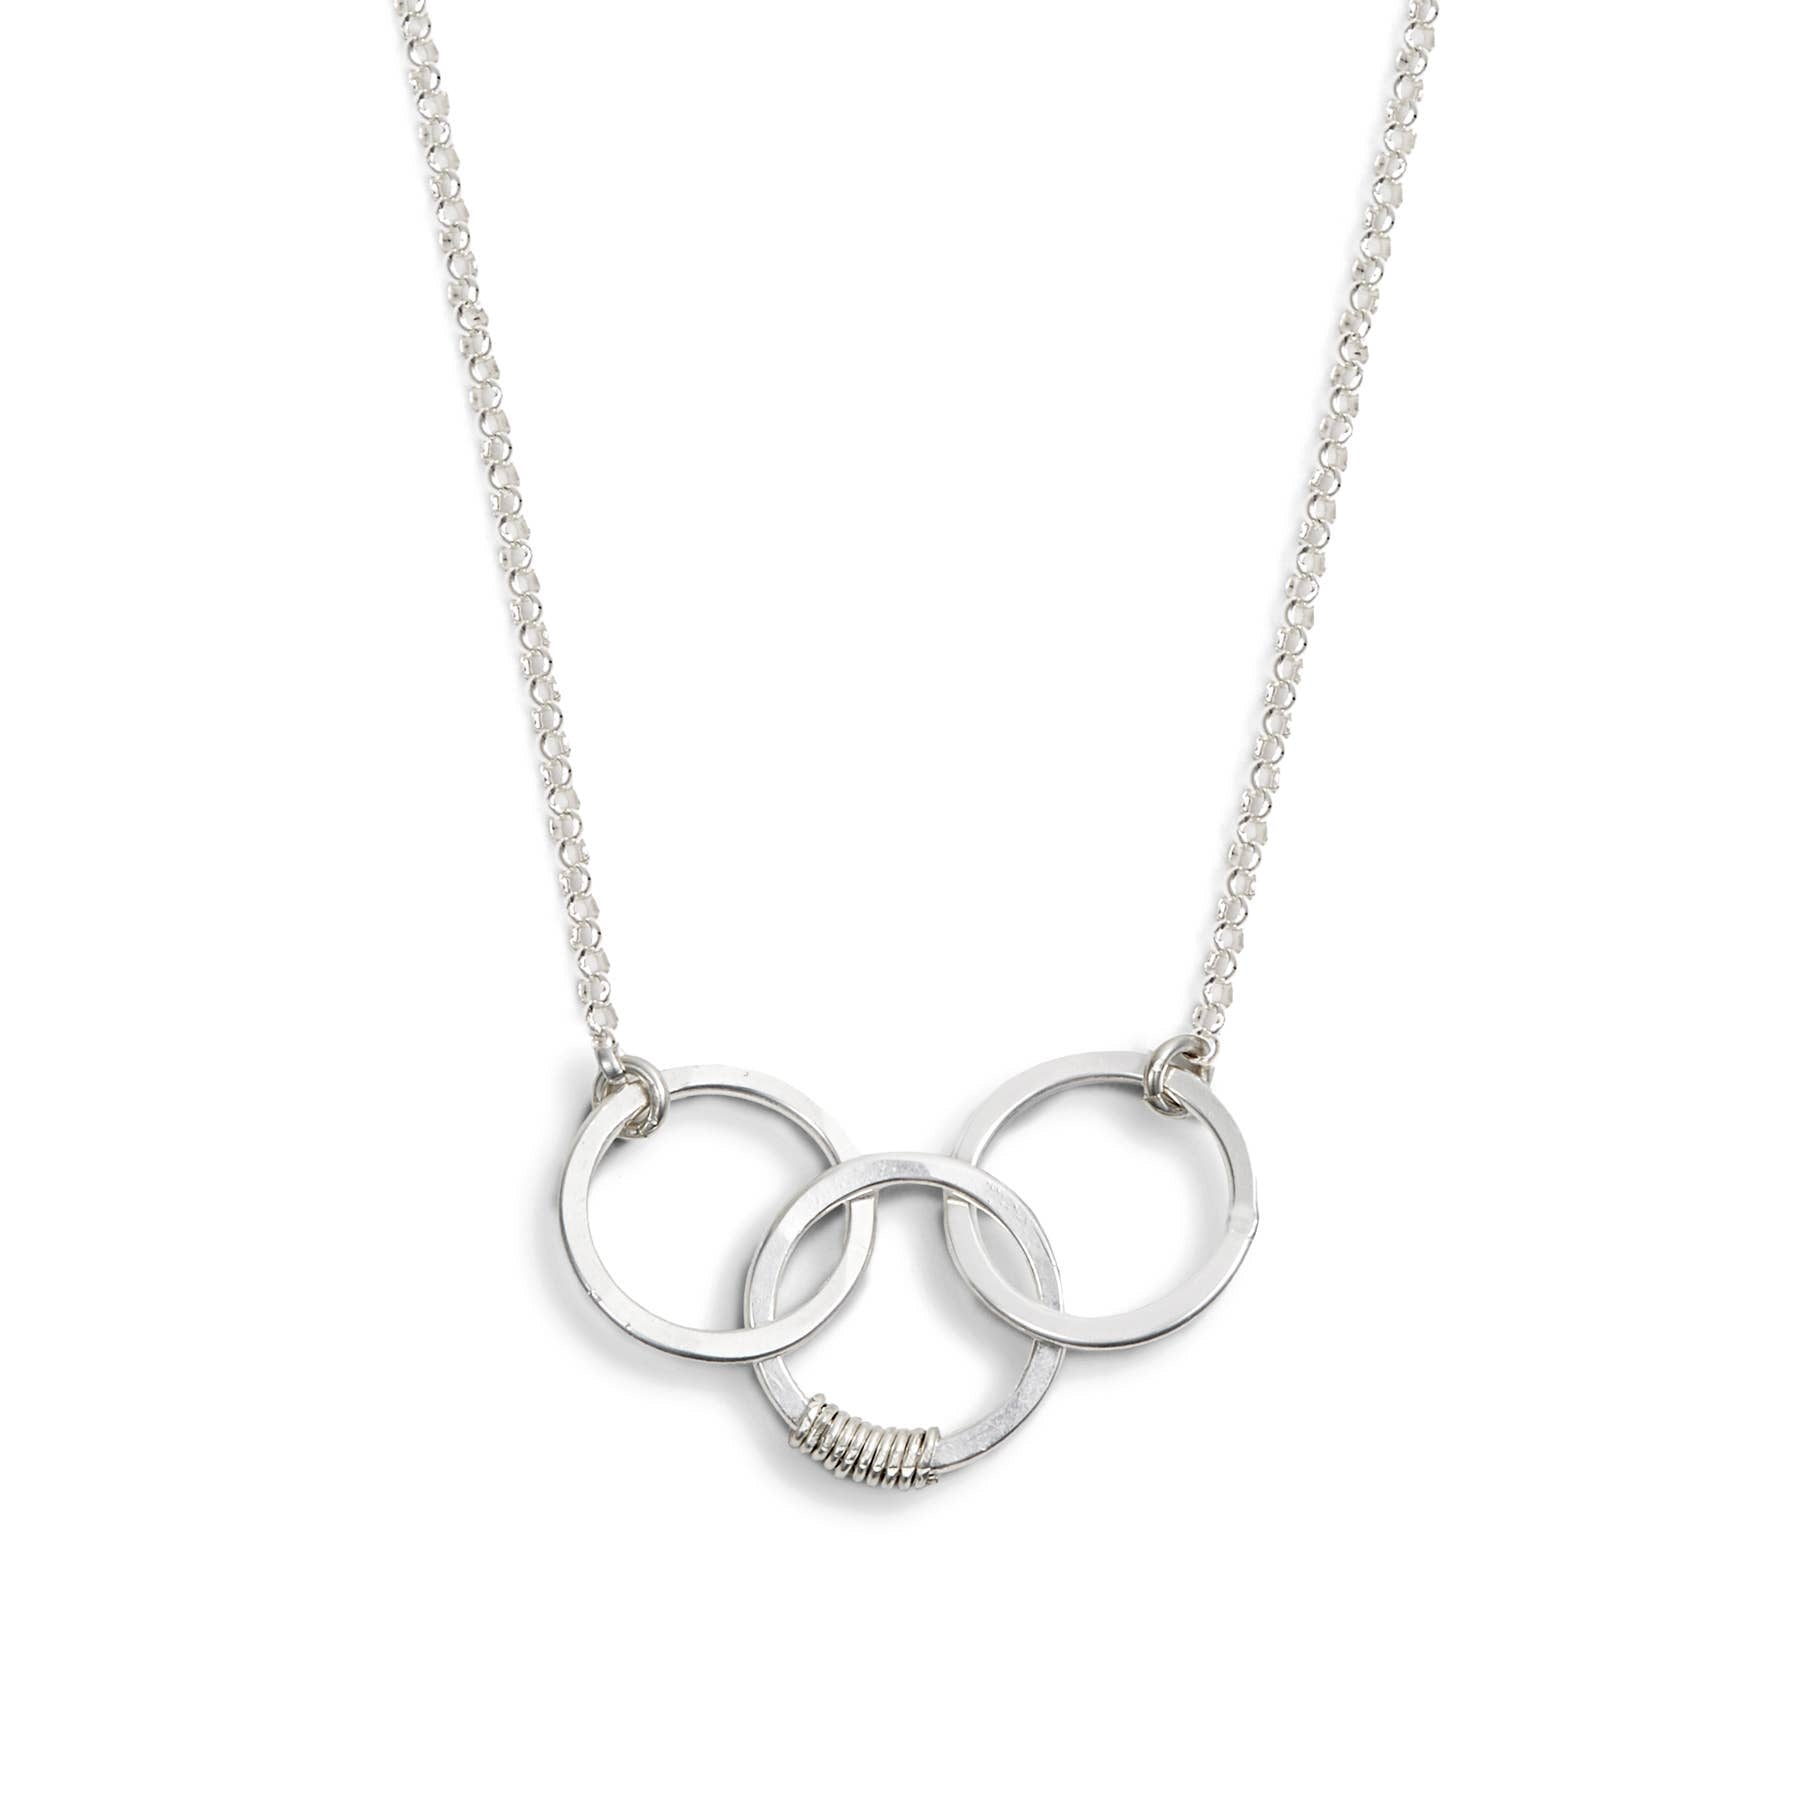 Cartwheel Necklace - three circle pendant